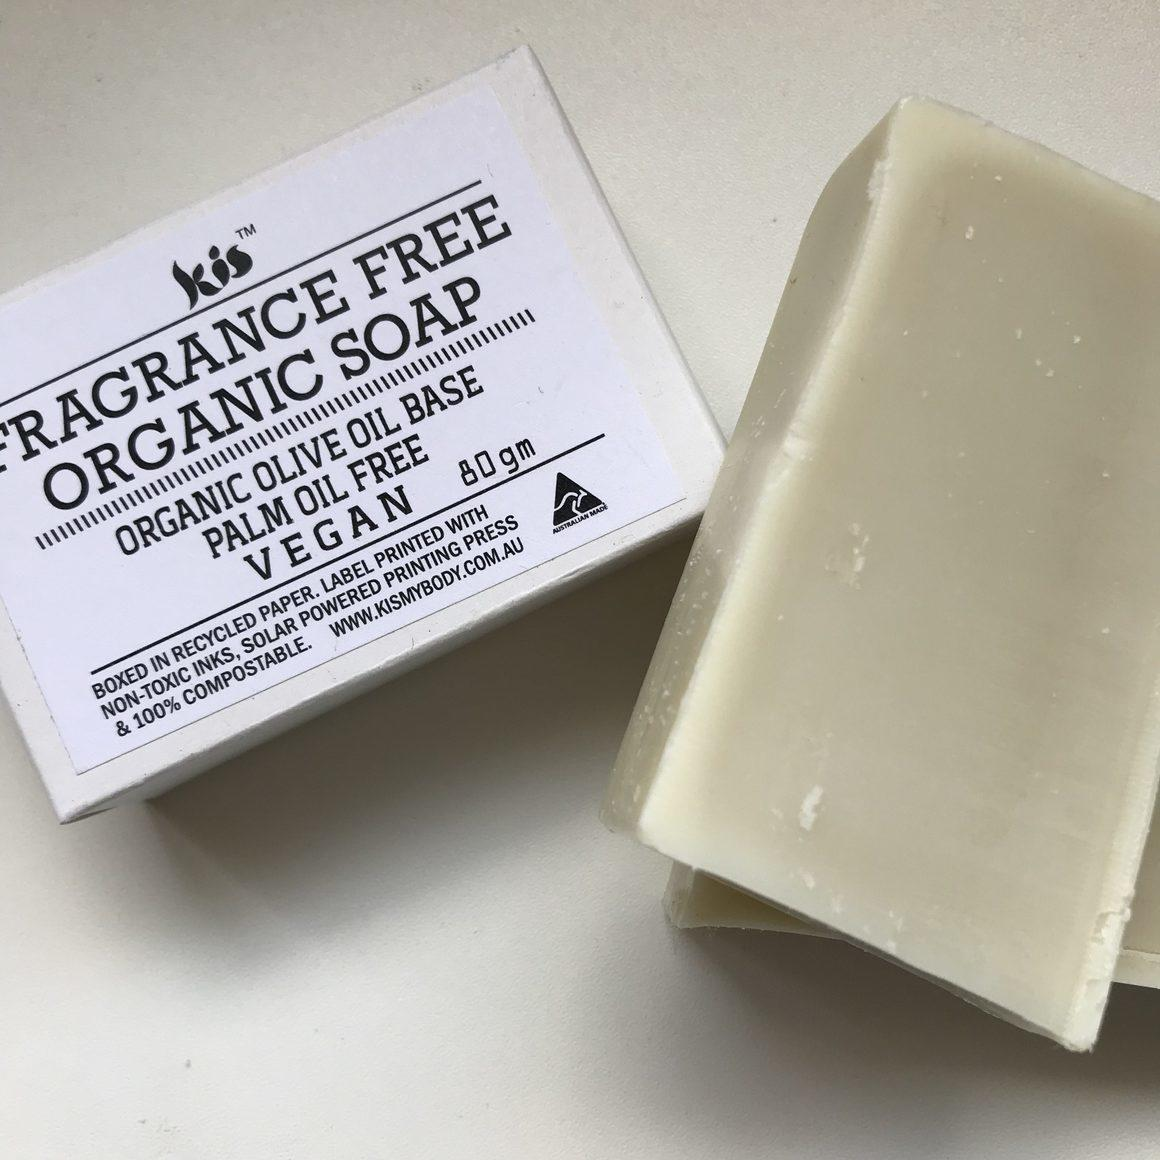 Kis Fragrance Free soap boxed or unboxed   Trada Marketplace